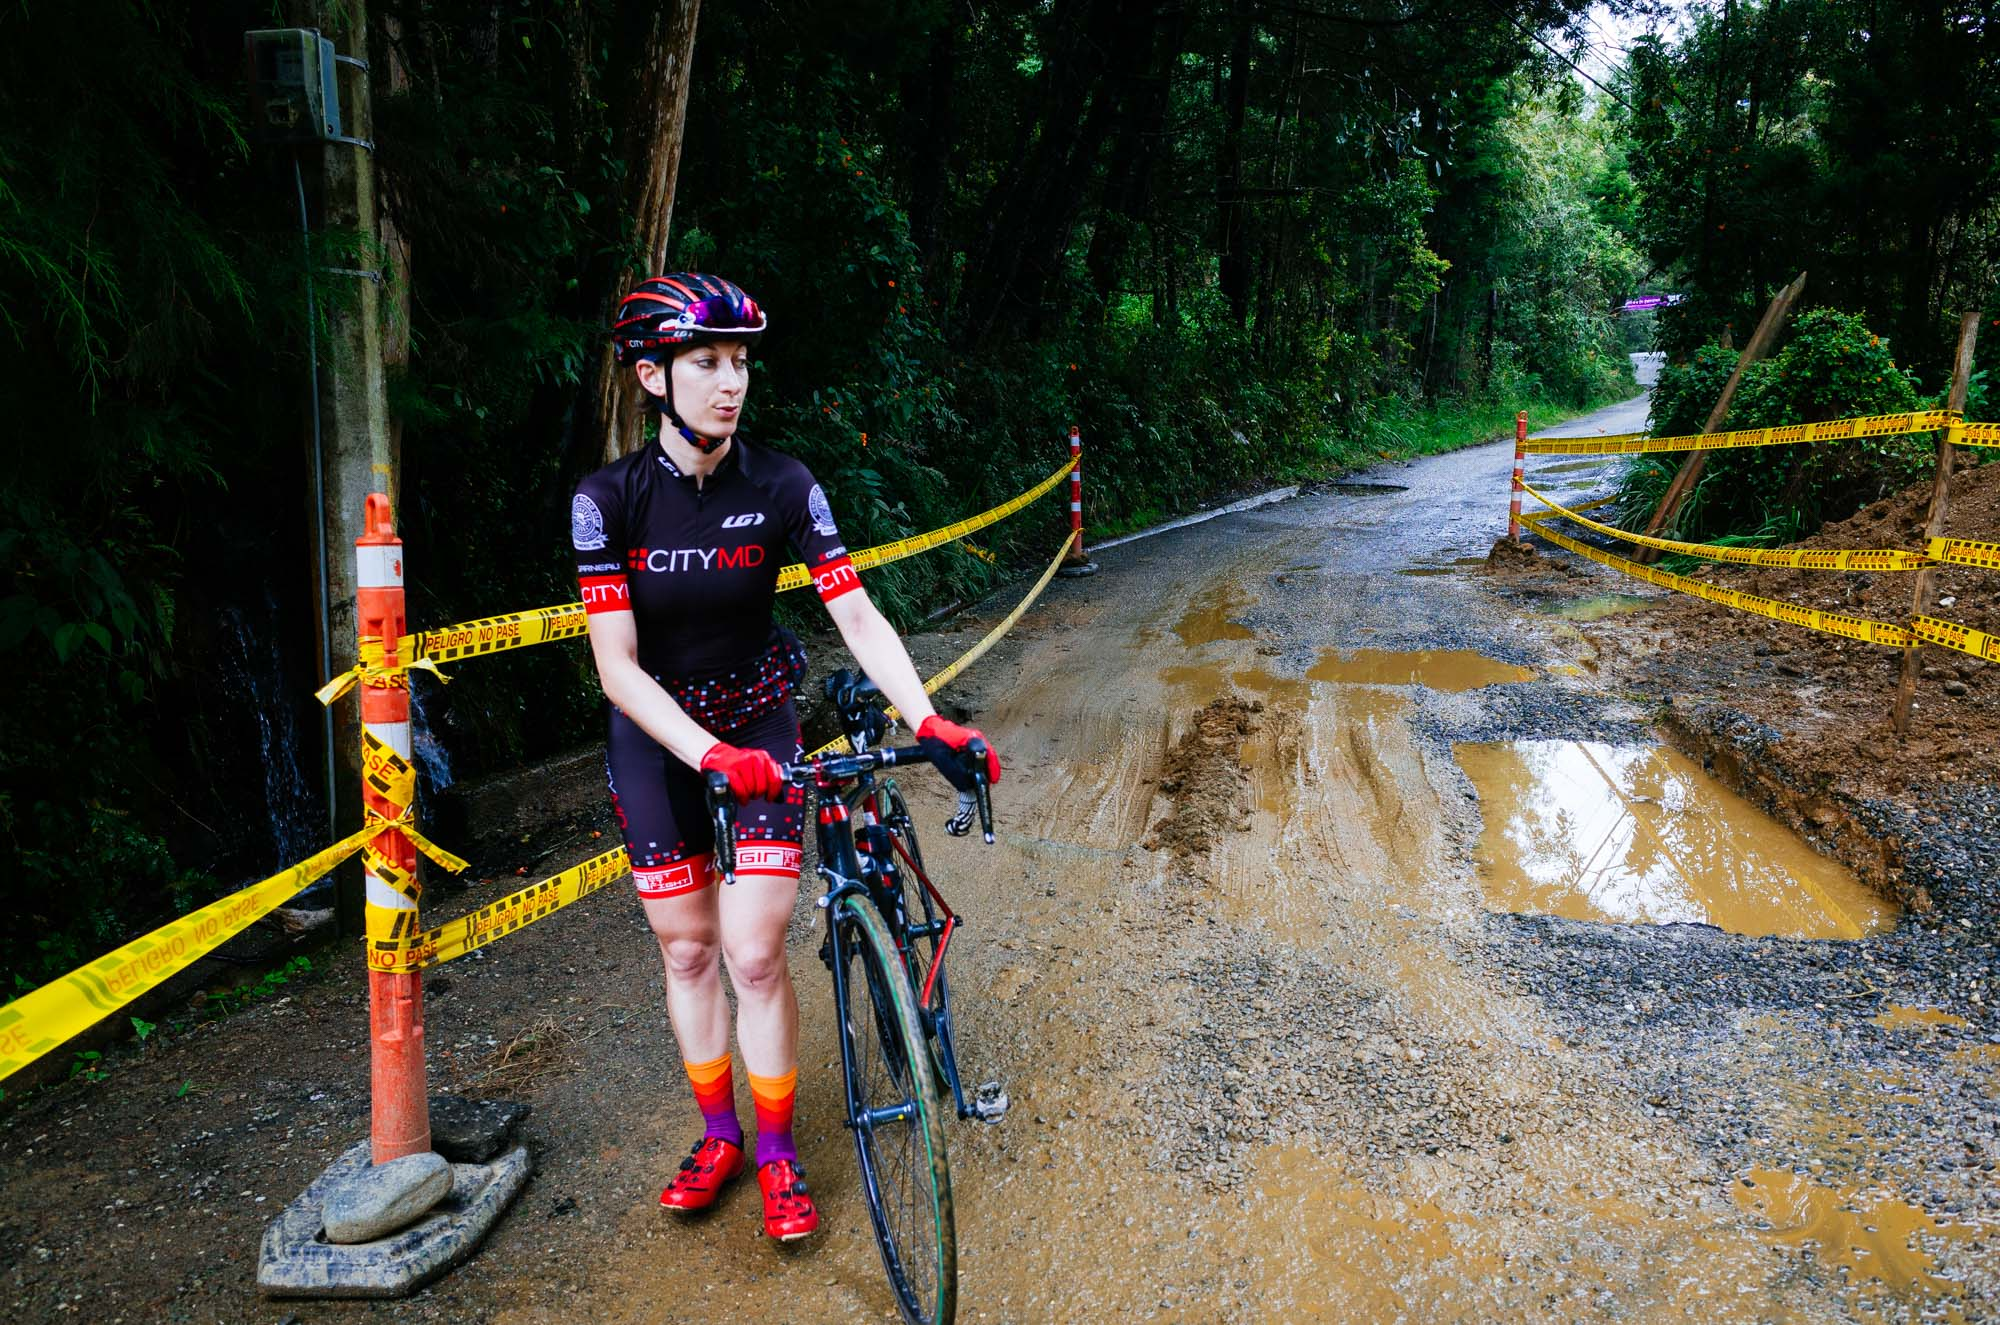 to-be-determined-photo-rhetoric-cycling-in-colombia-1051.jpg